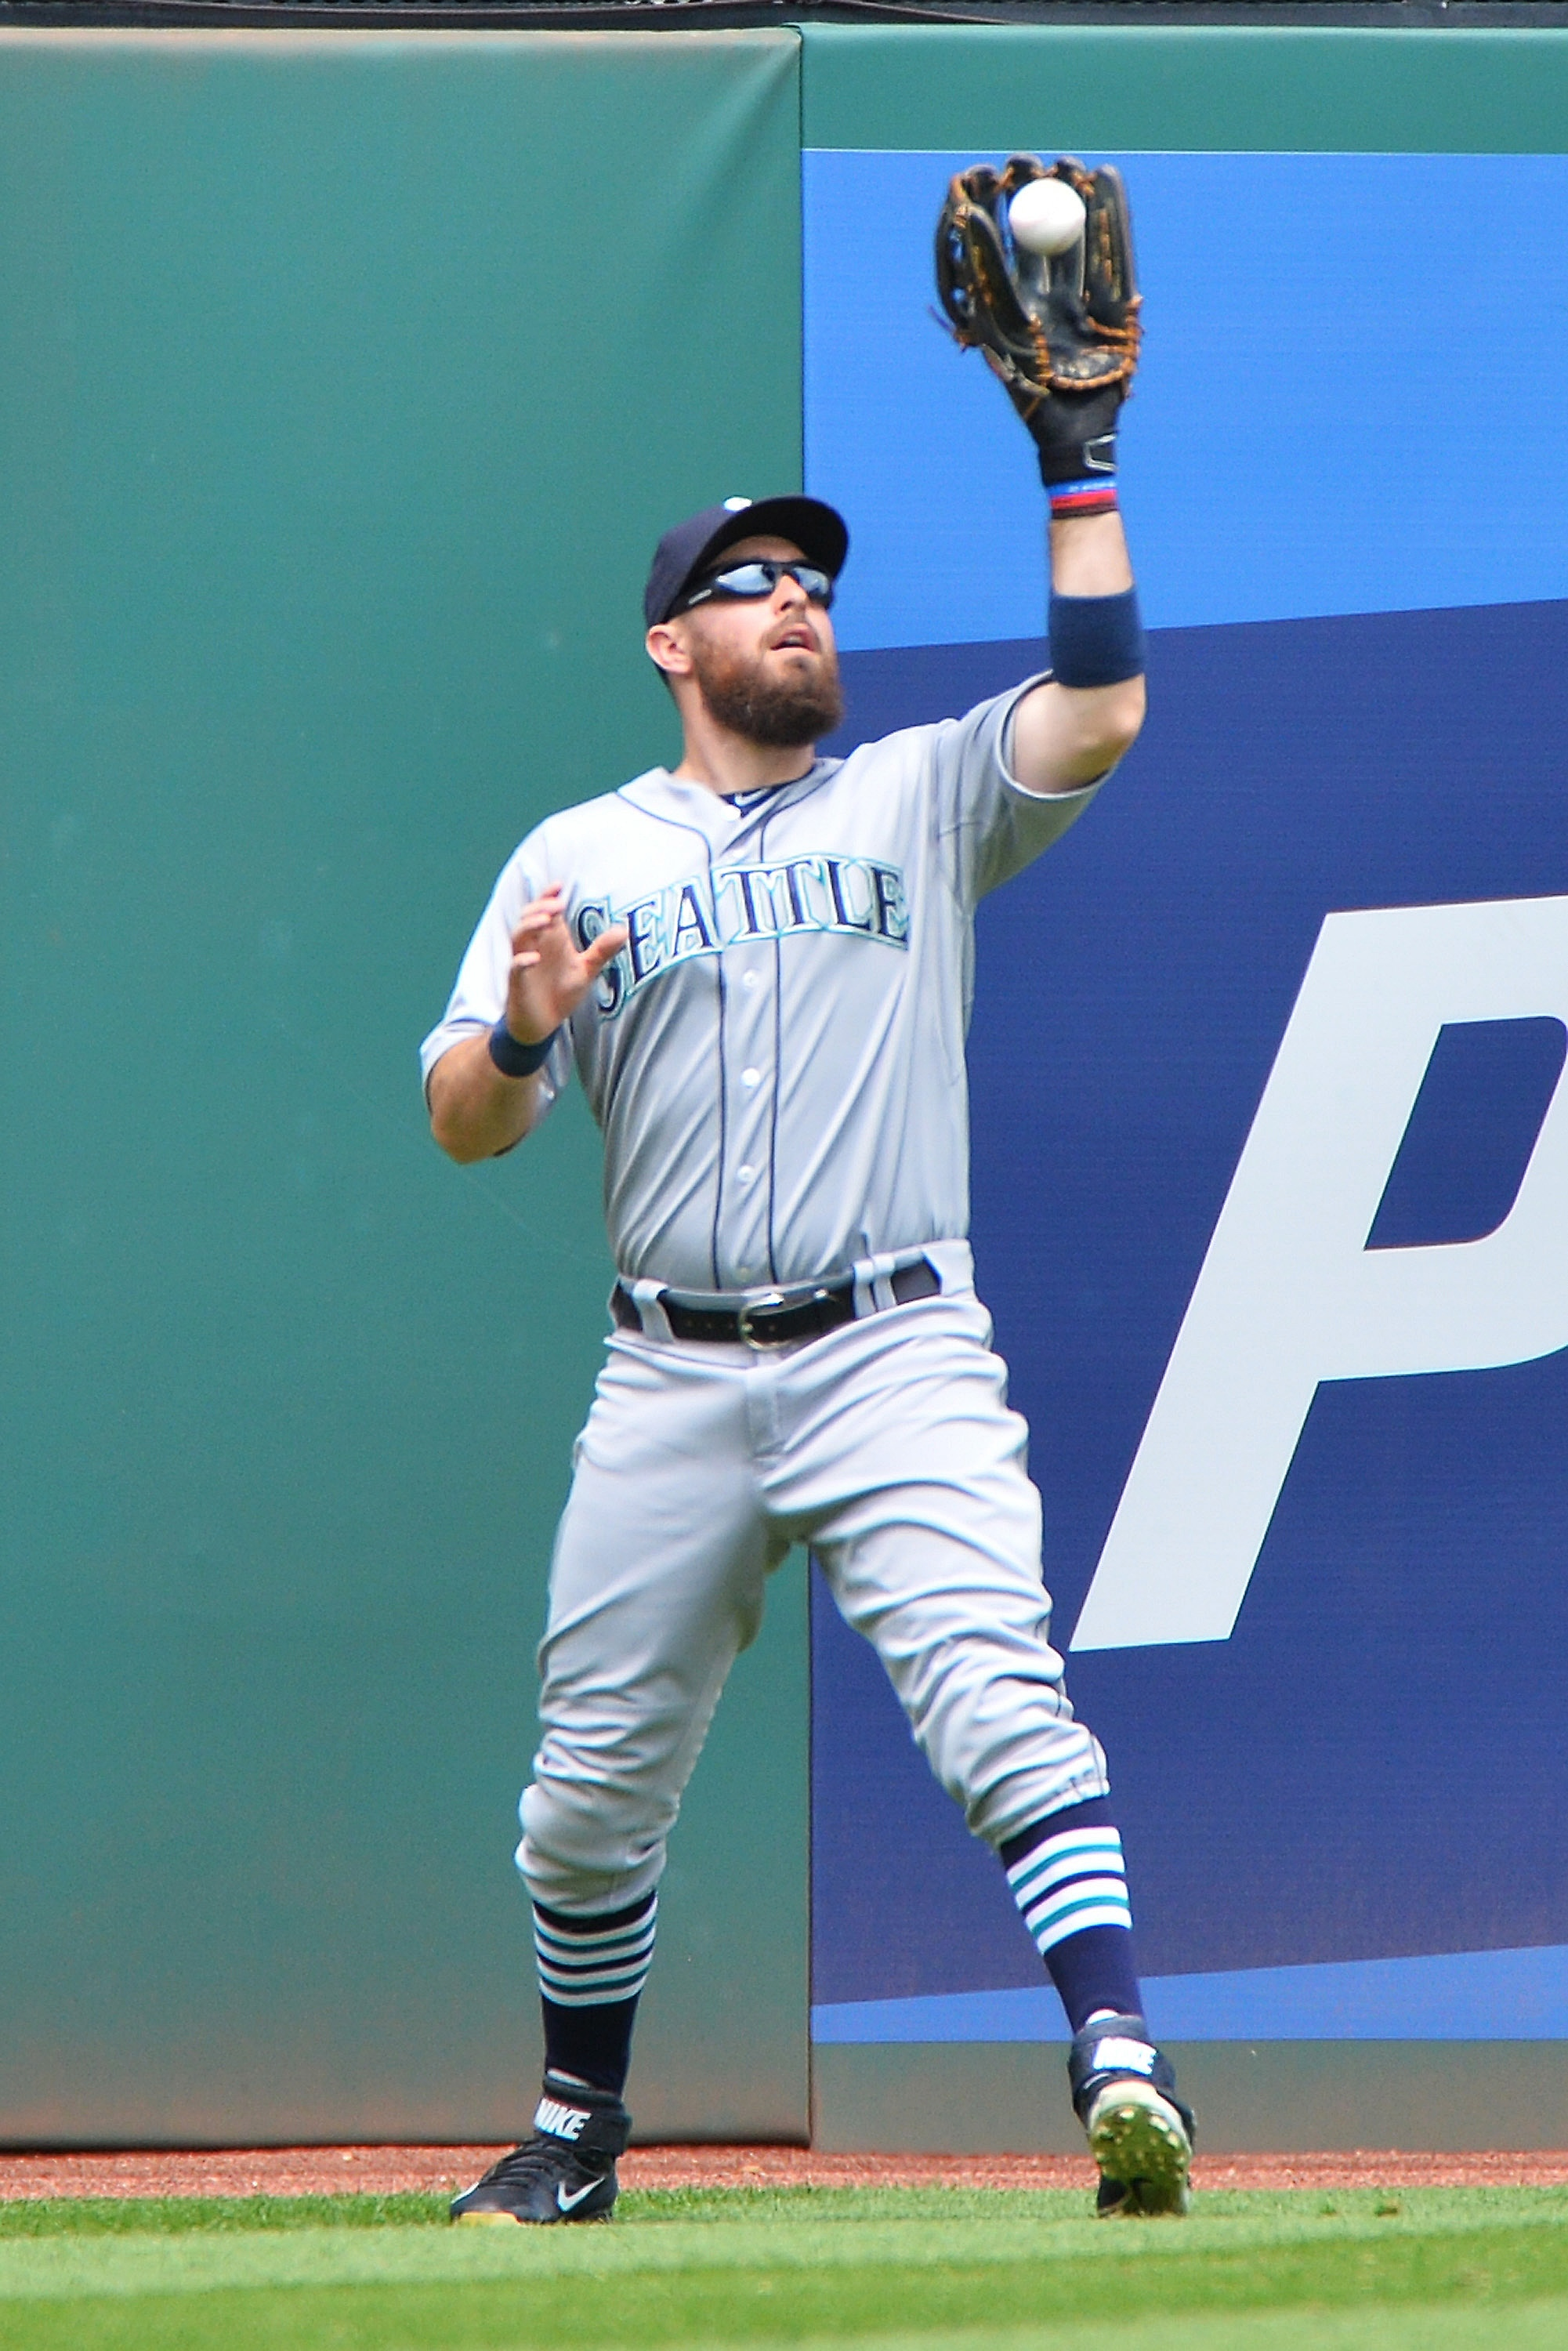 Yankees get outfielder Dustin Ackley in trade with Mariners